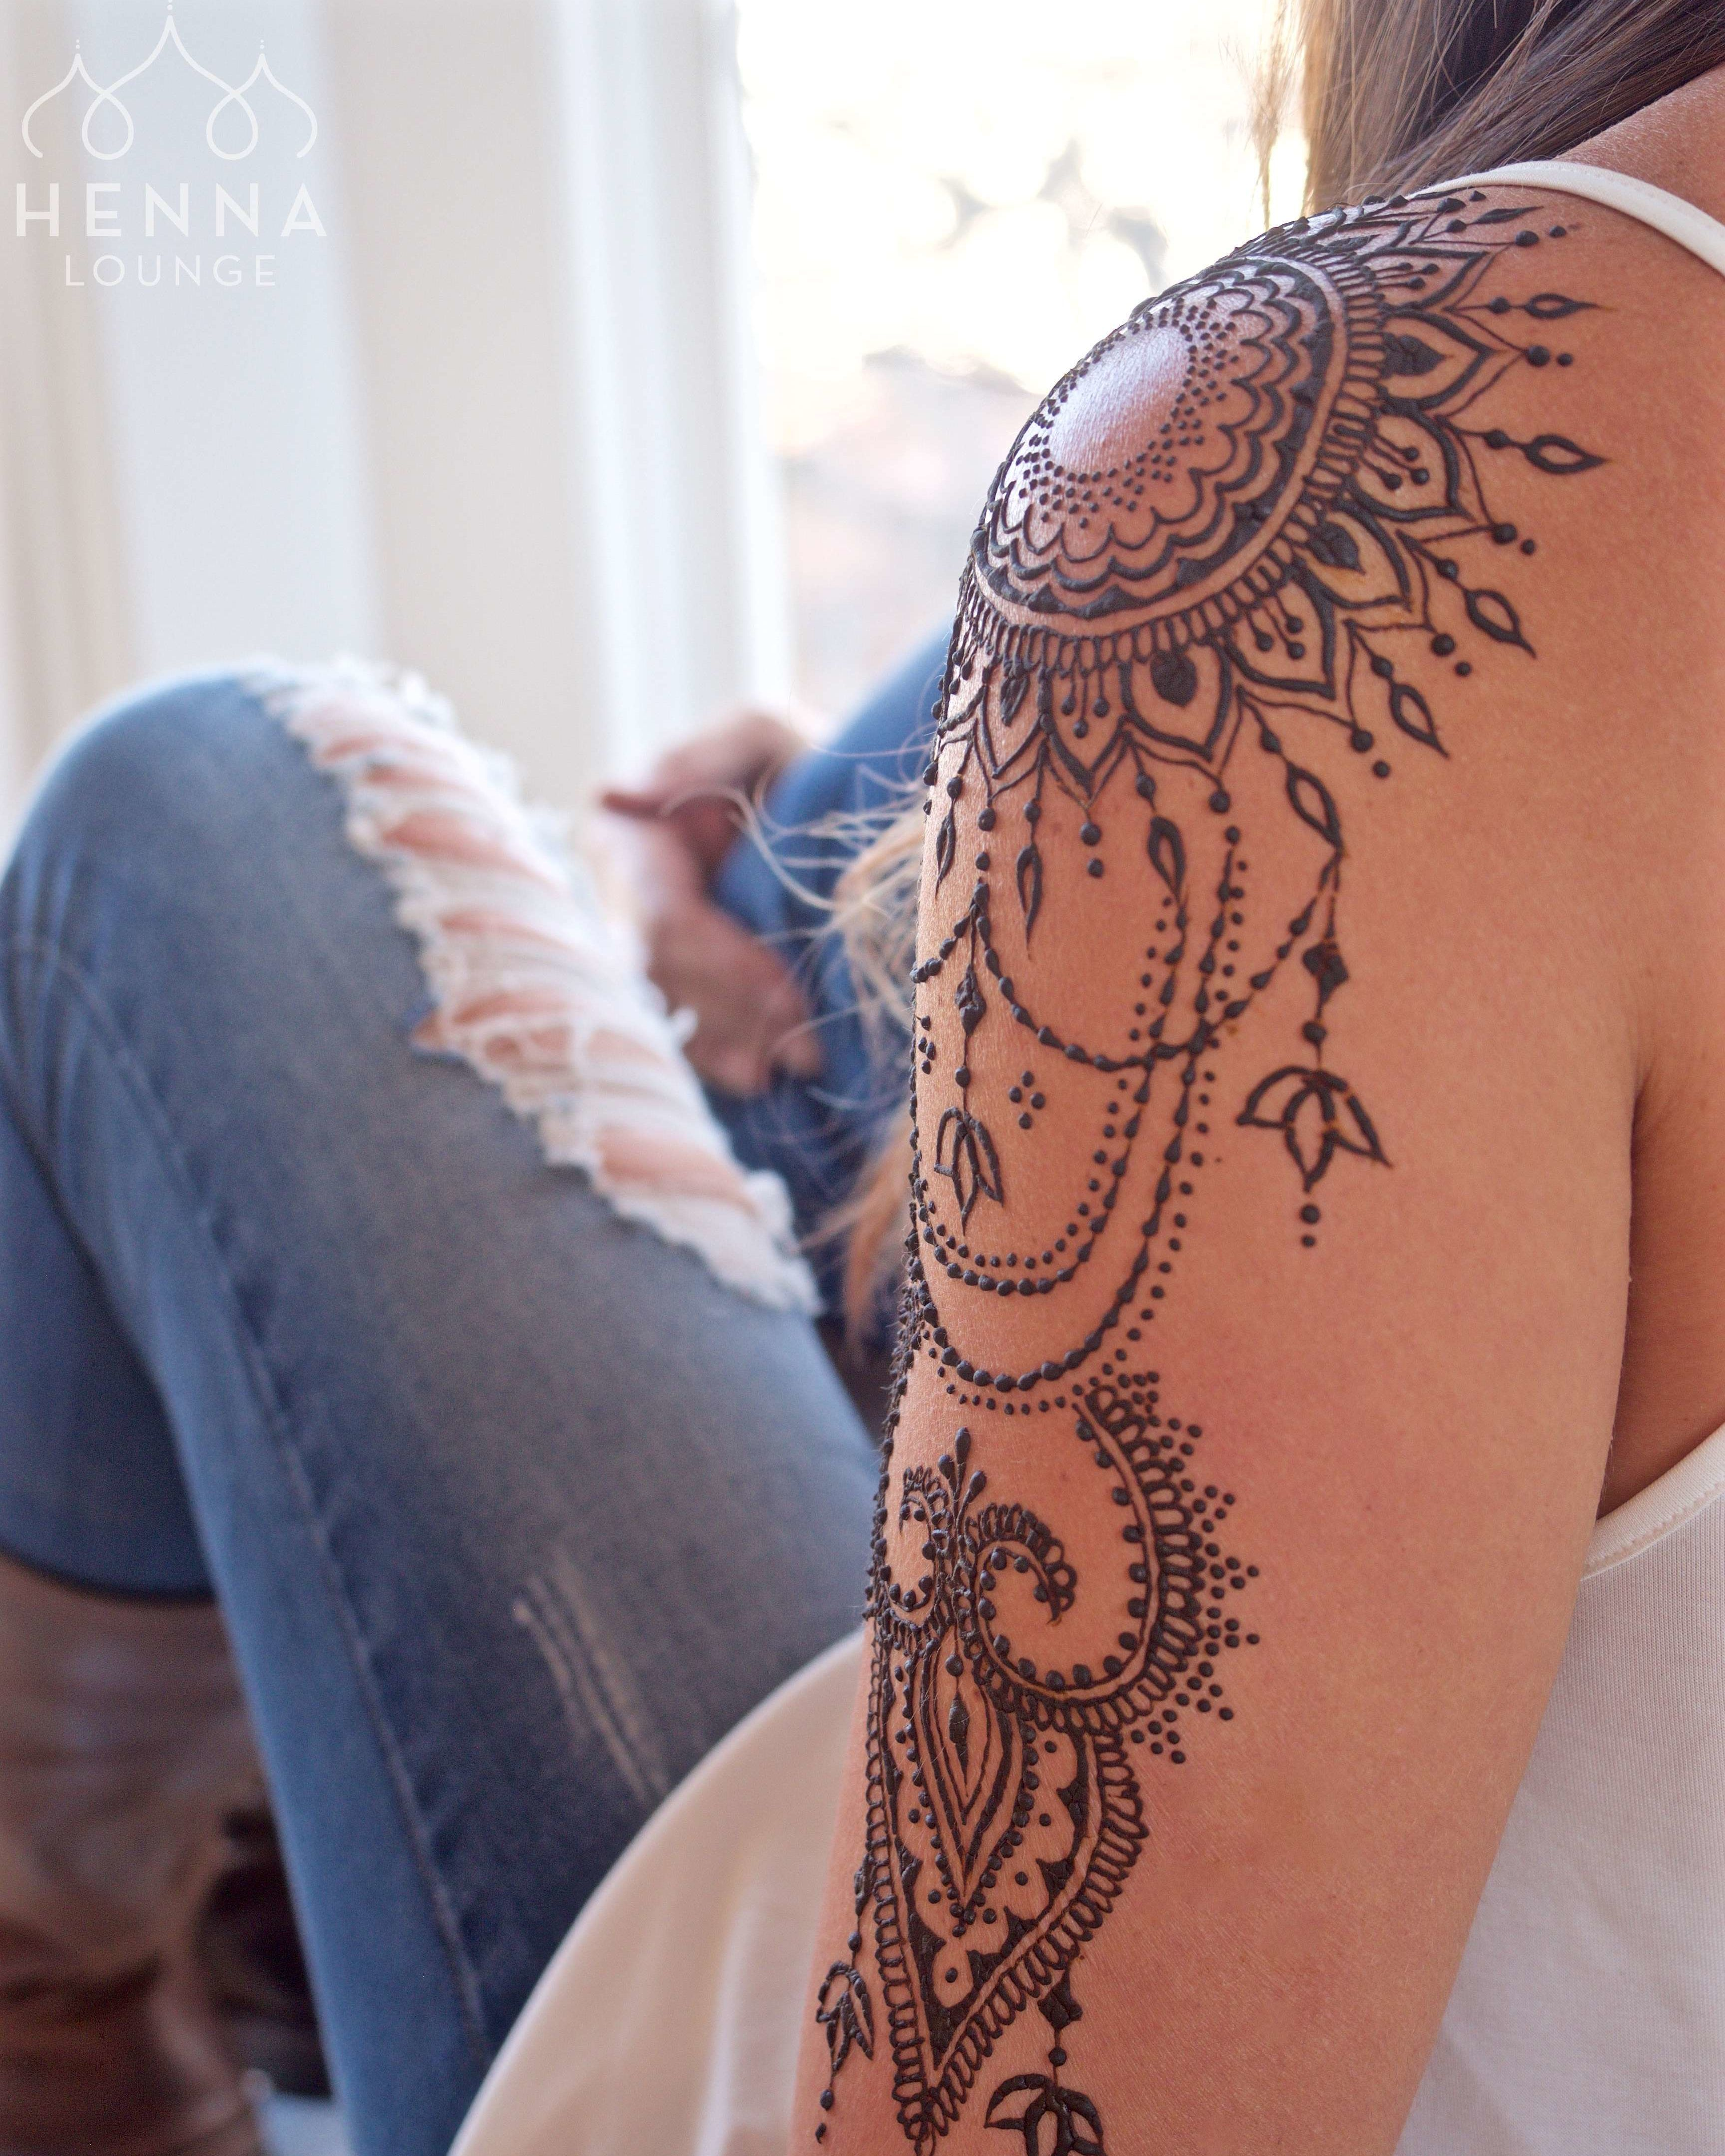 Tattoo tattoo designs and photography you can - A Photo